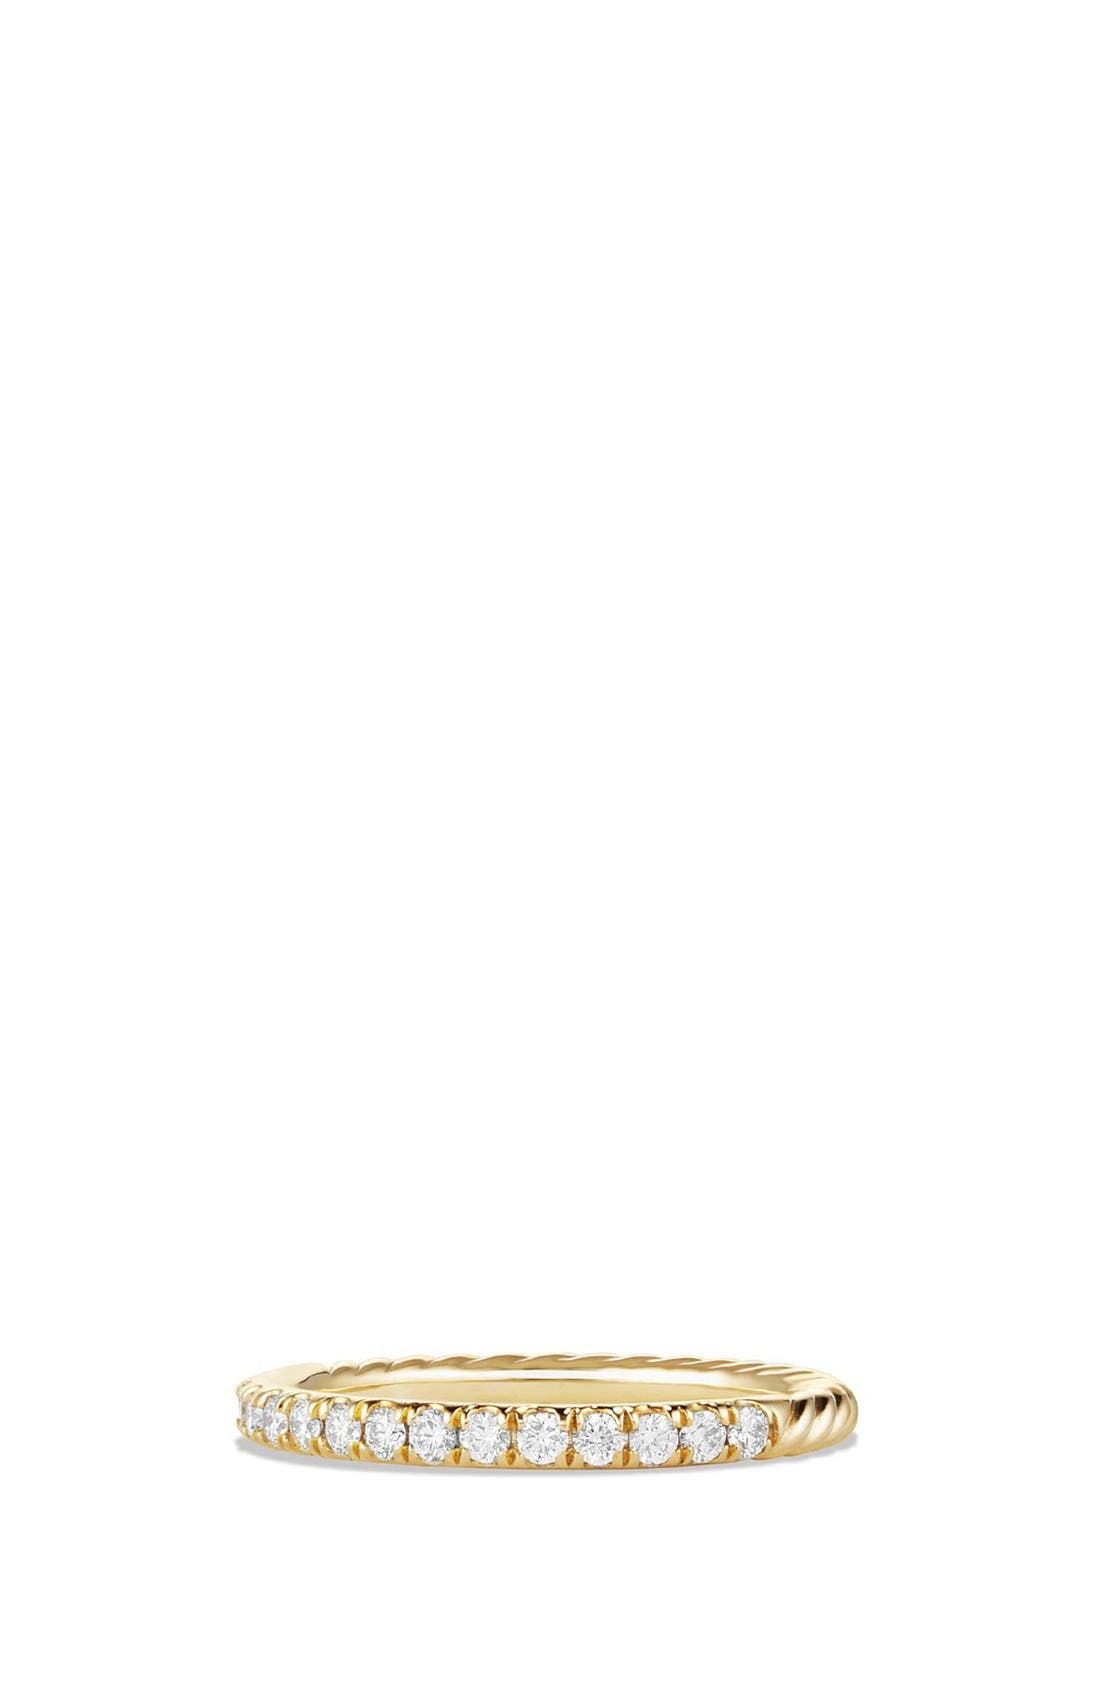 DAVID YURMAN Cable Ring with Diamonds in 18K Gold